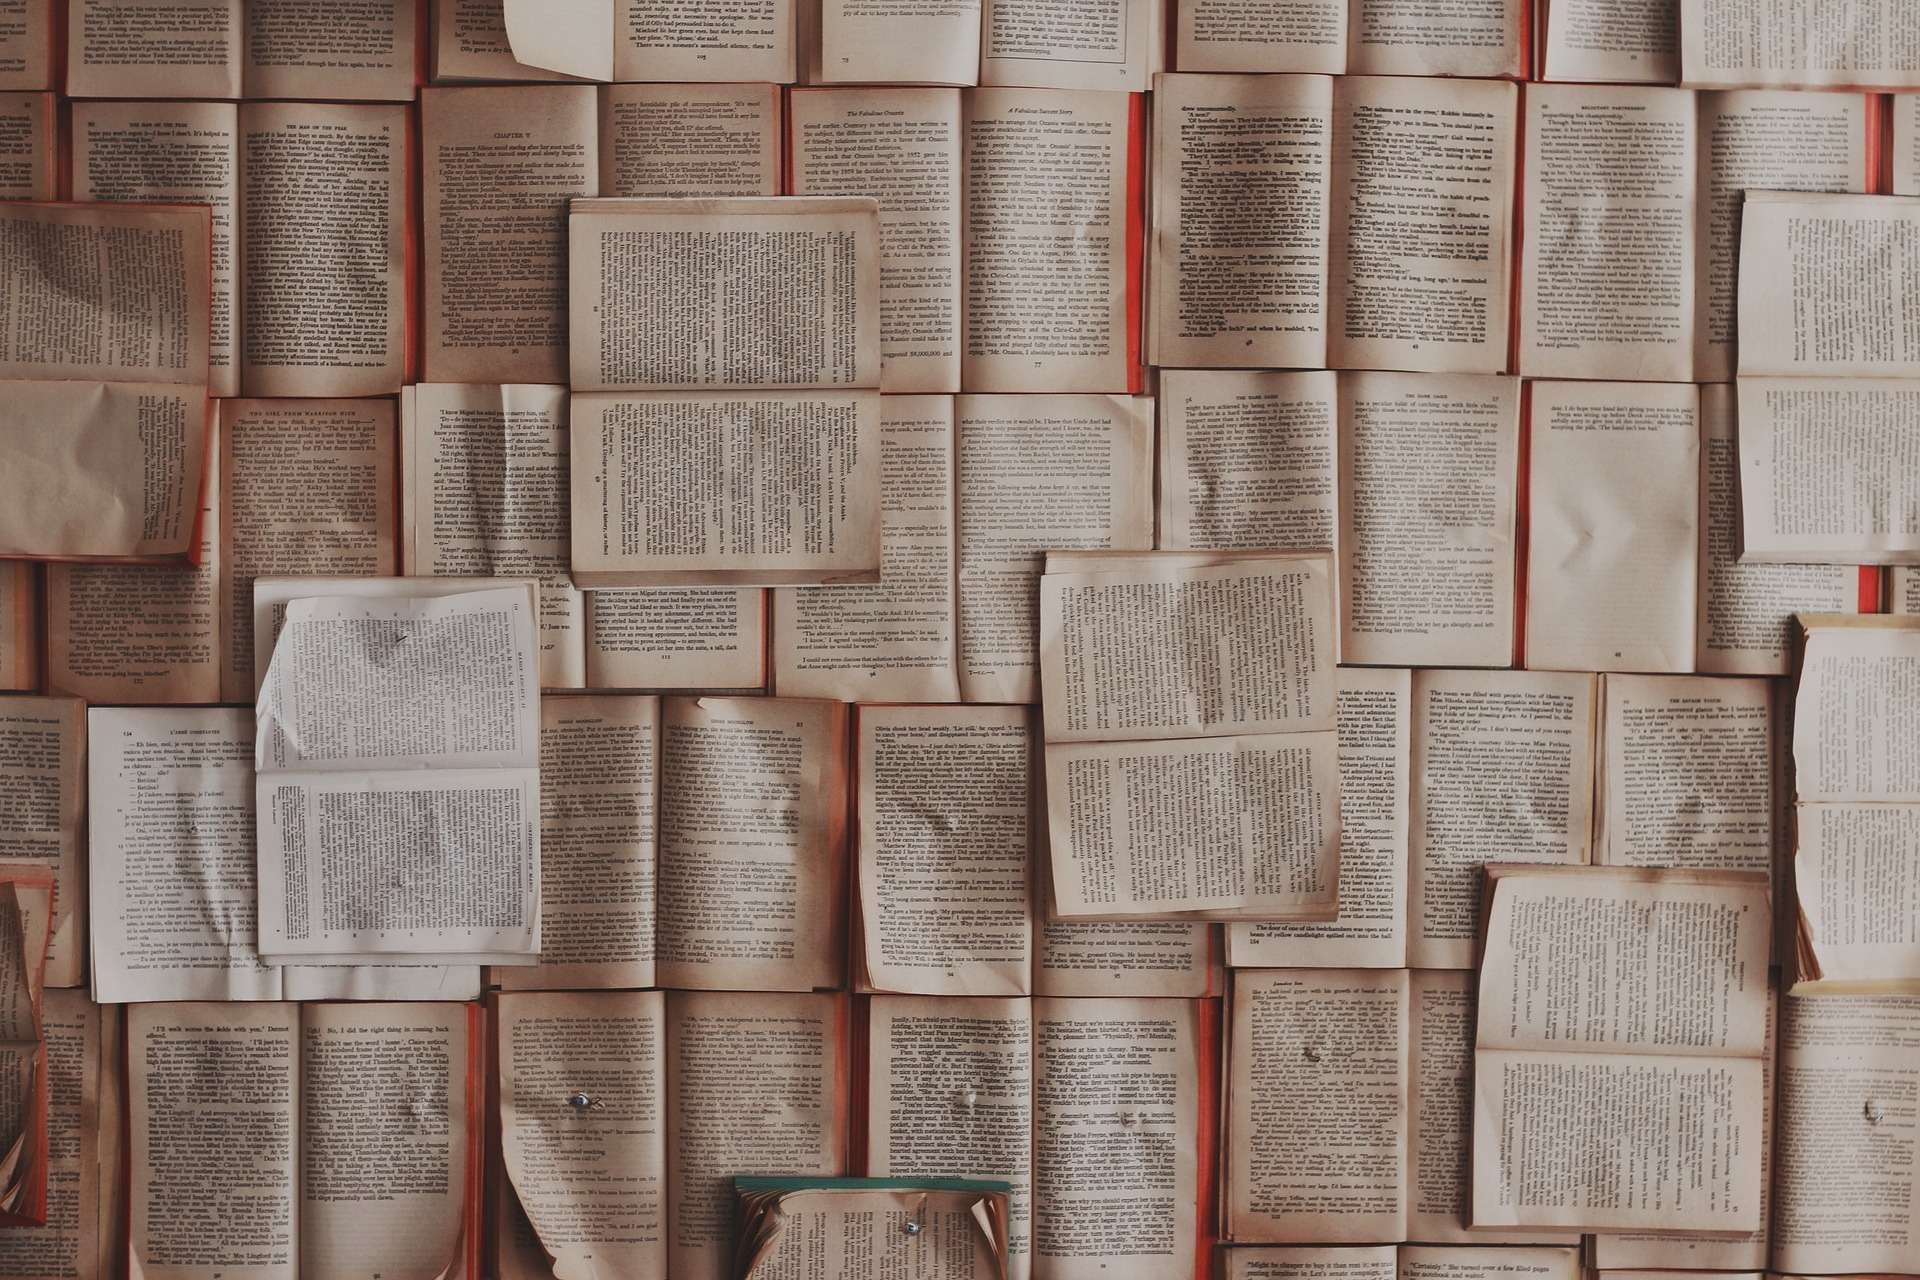 open pages of books